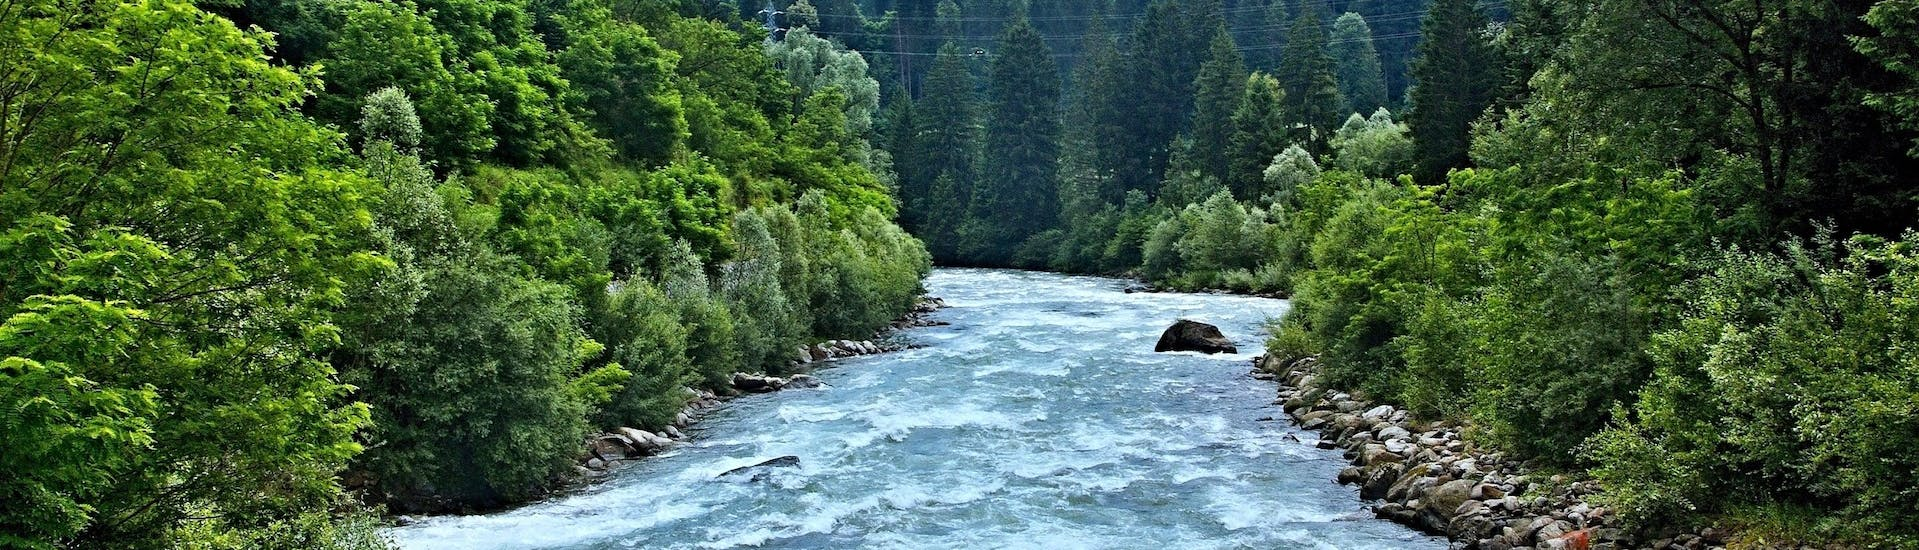 An image of the Noce River, a popular place to go rafting in Val di Sole.